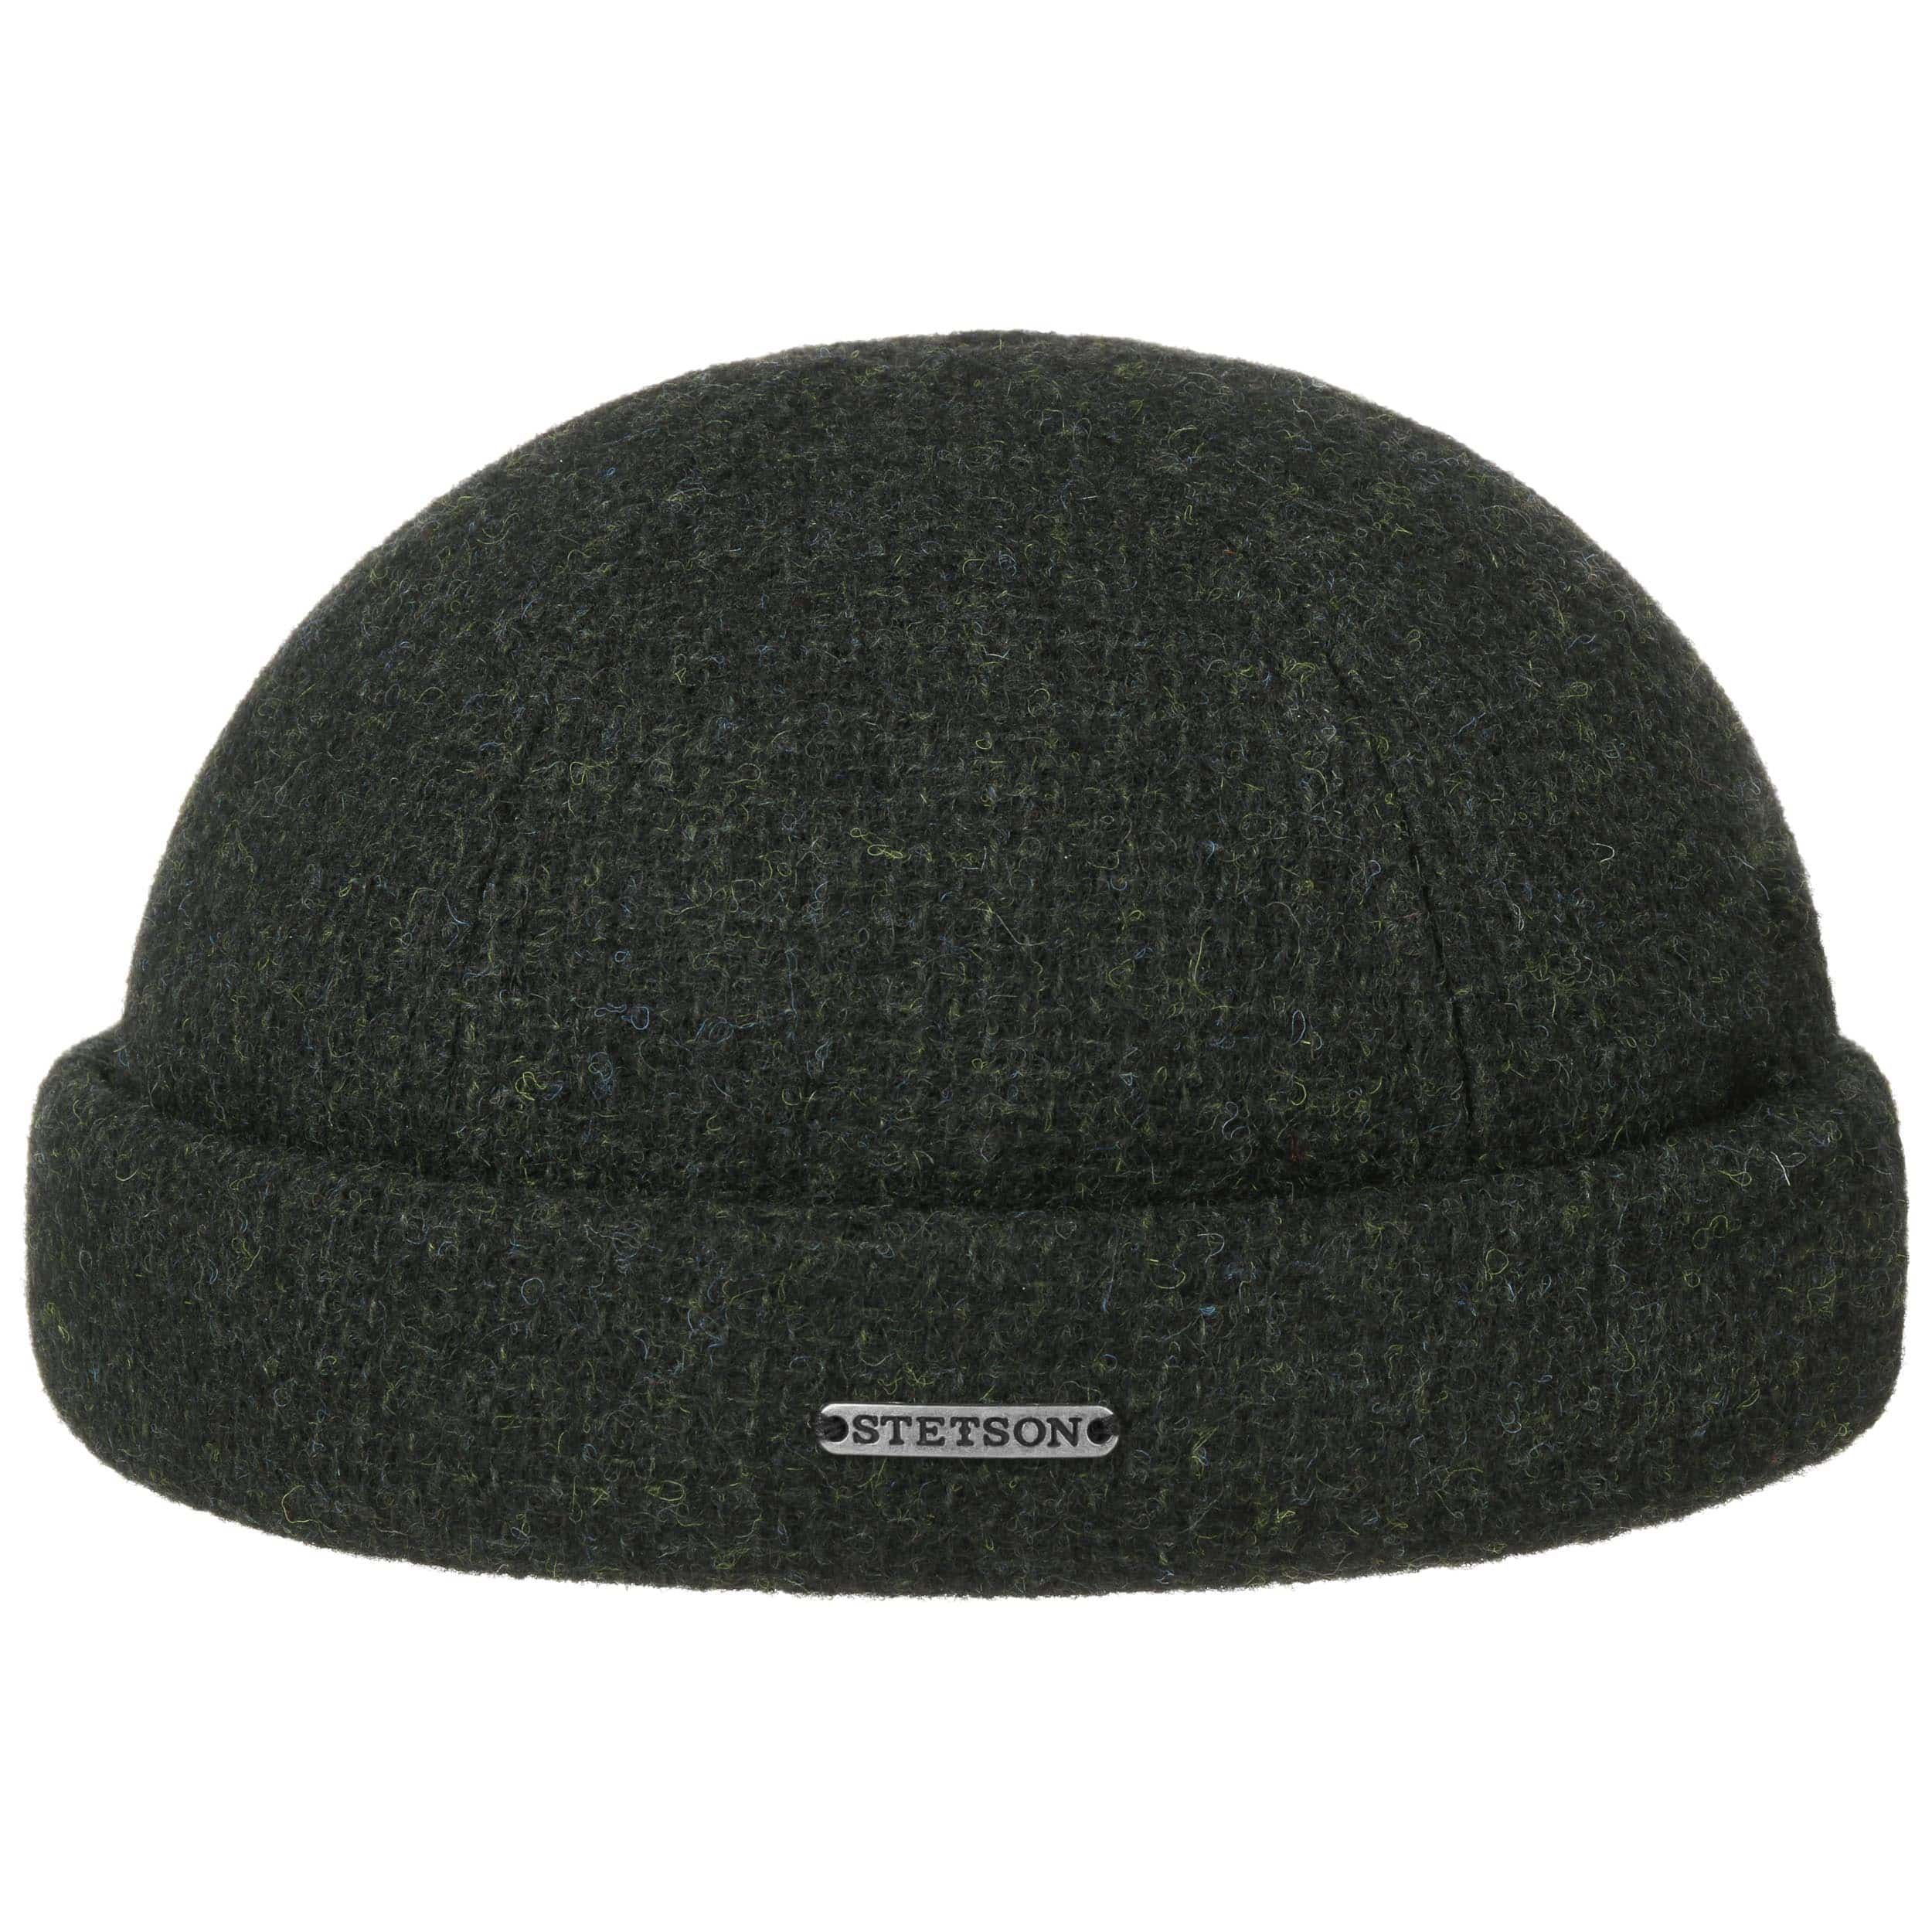 Castleton Wool Docker Hat olive